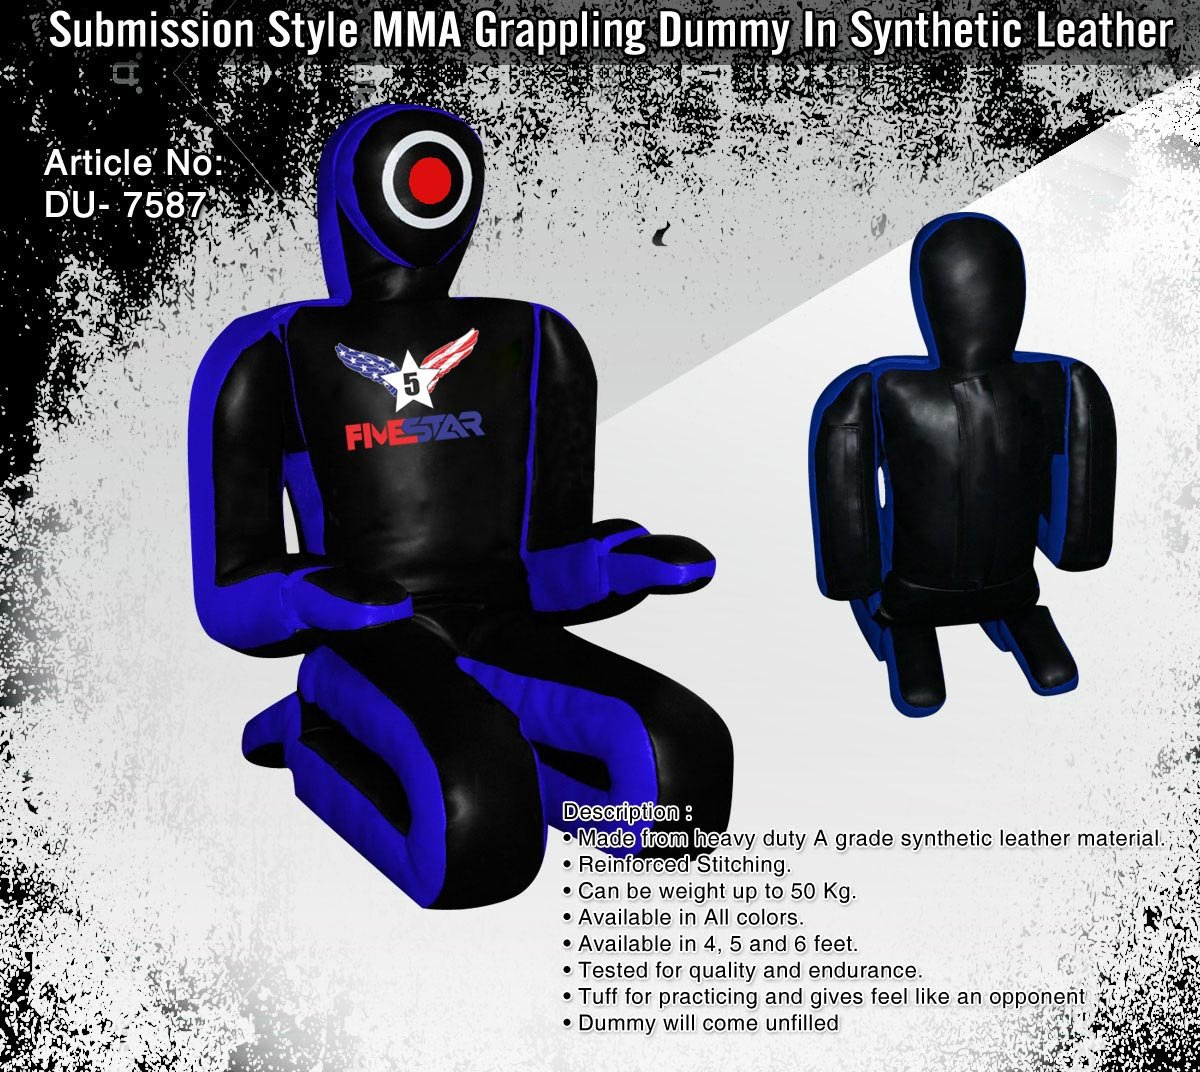 Best Submission Style Martial Art Grappling Dummy